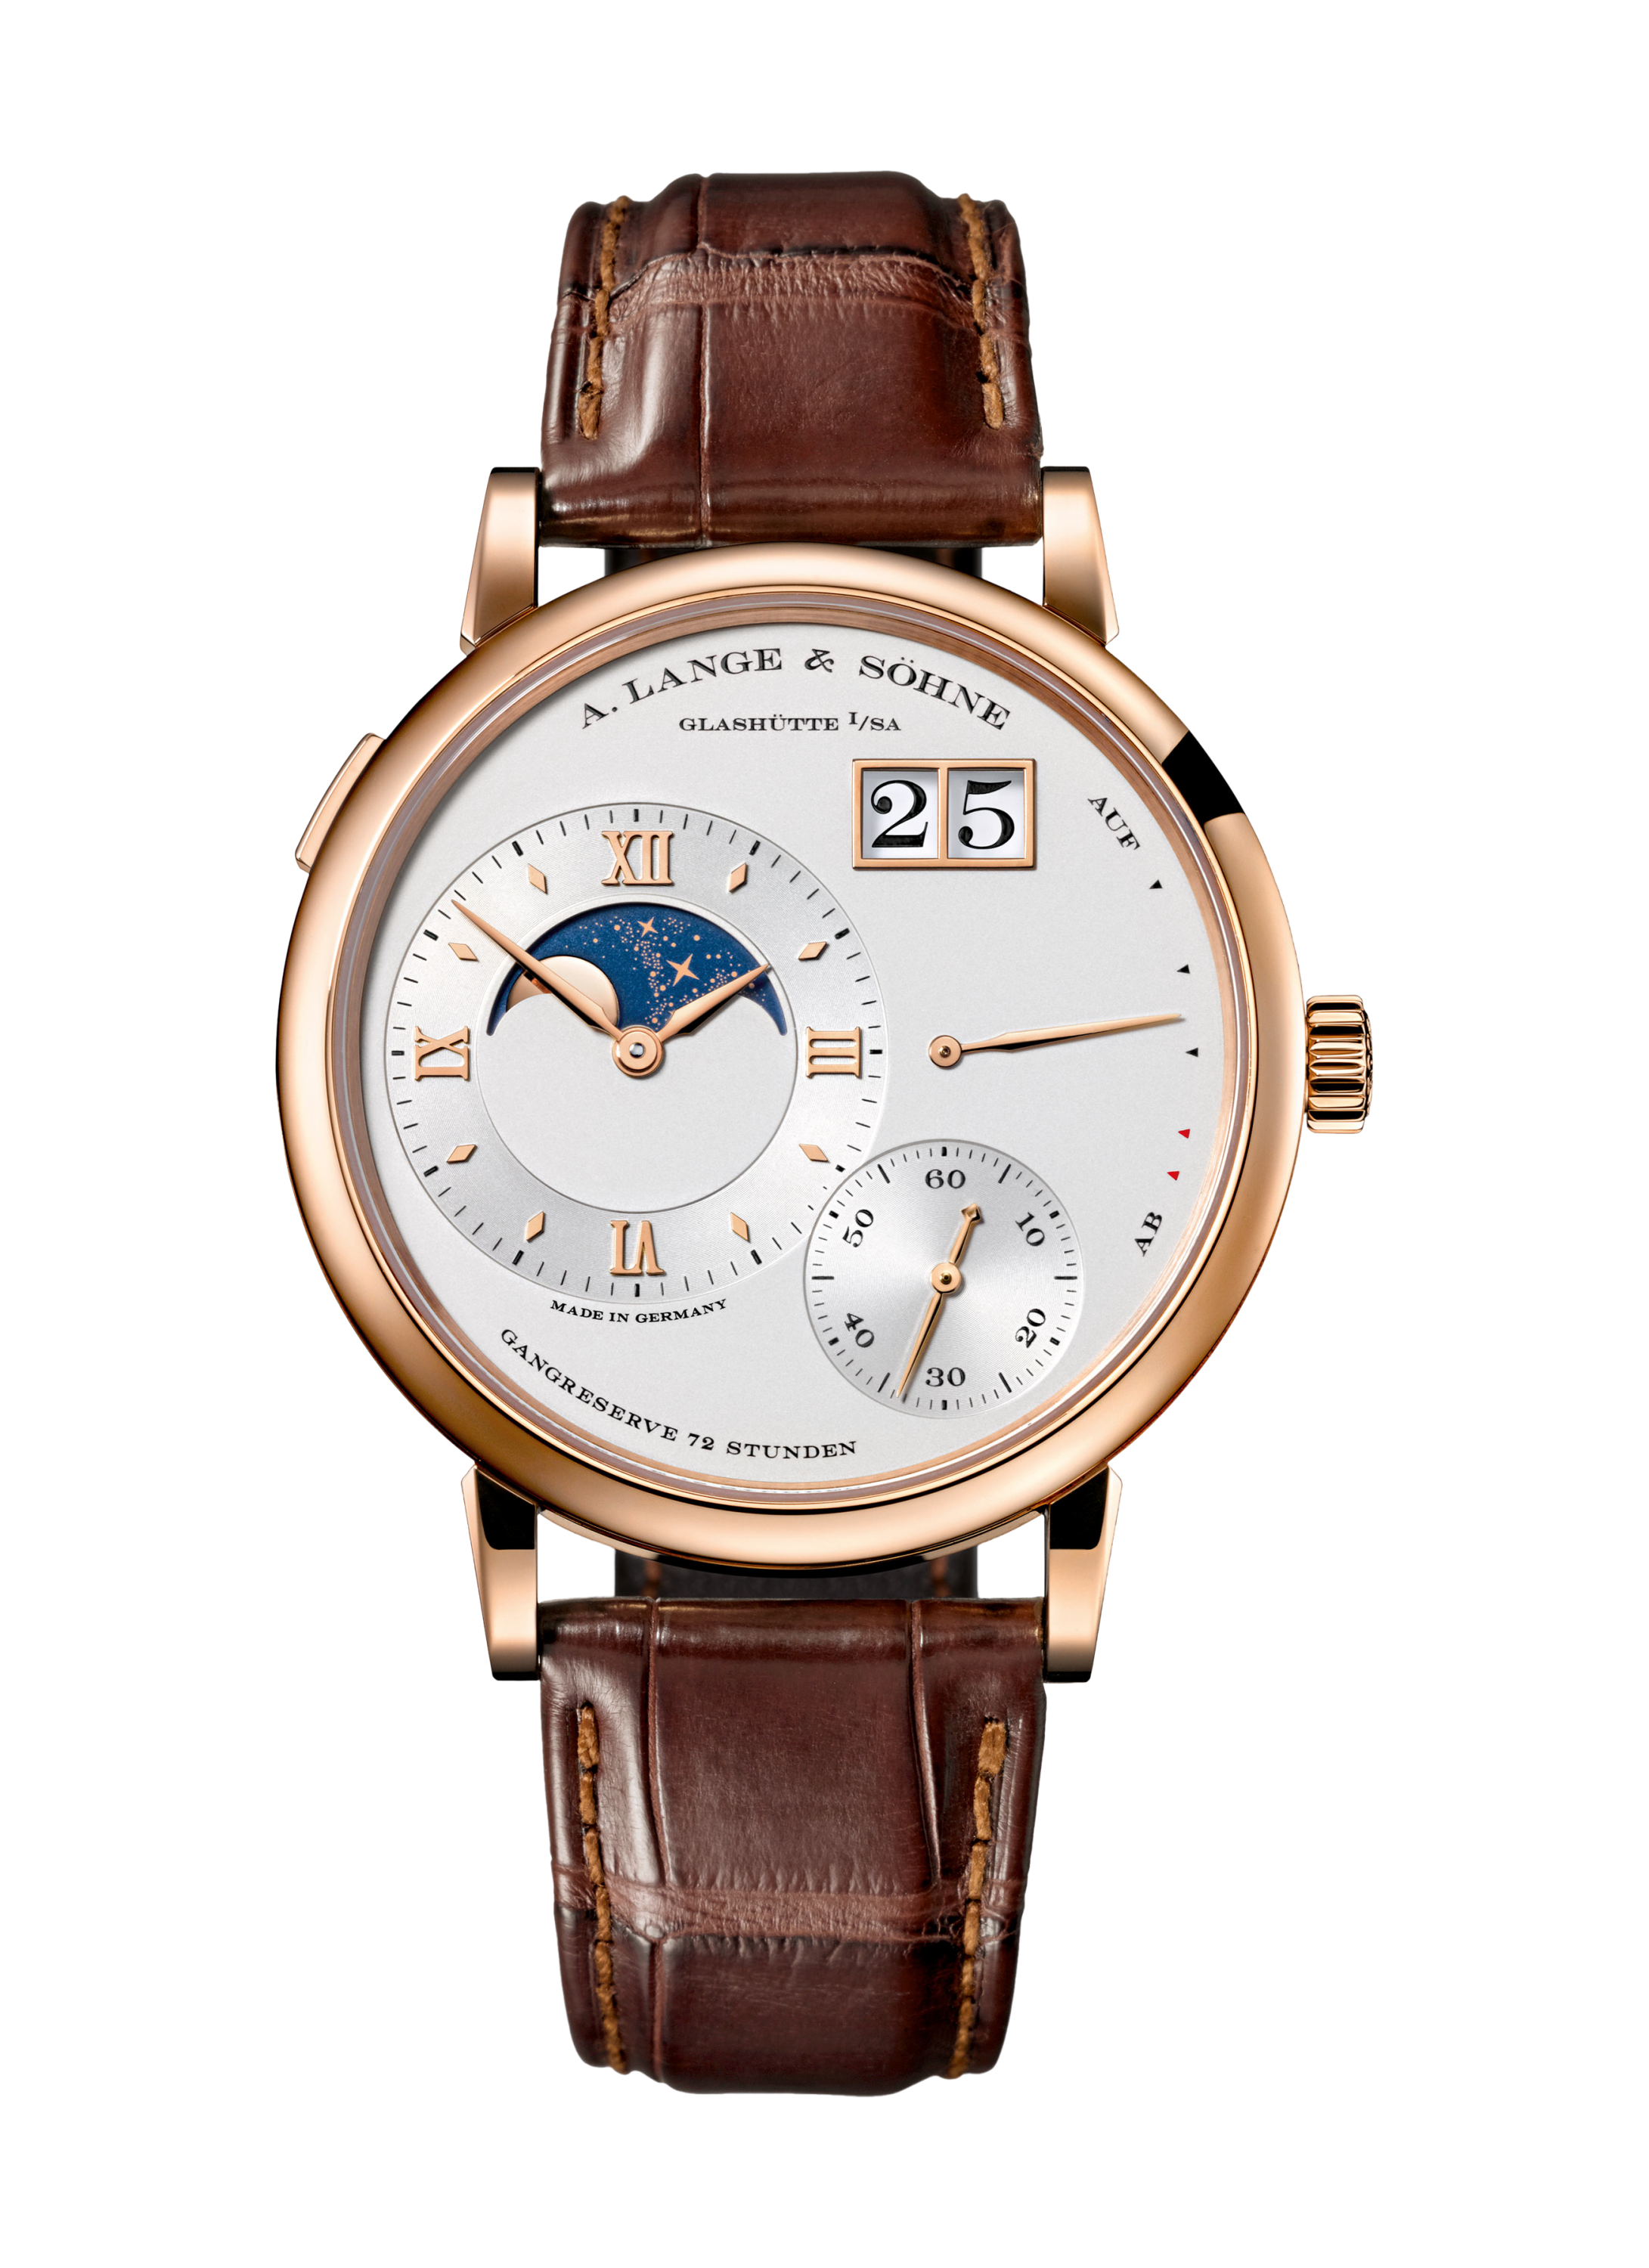 A.L&S Grand Lange 1 Moon Phase 139.032